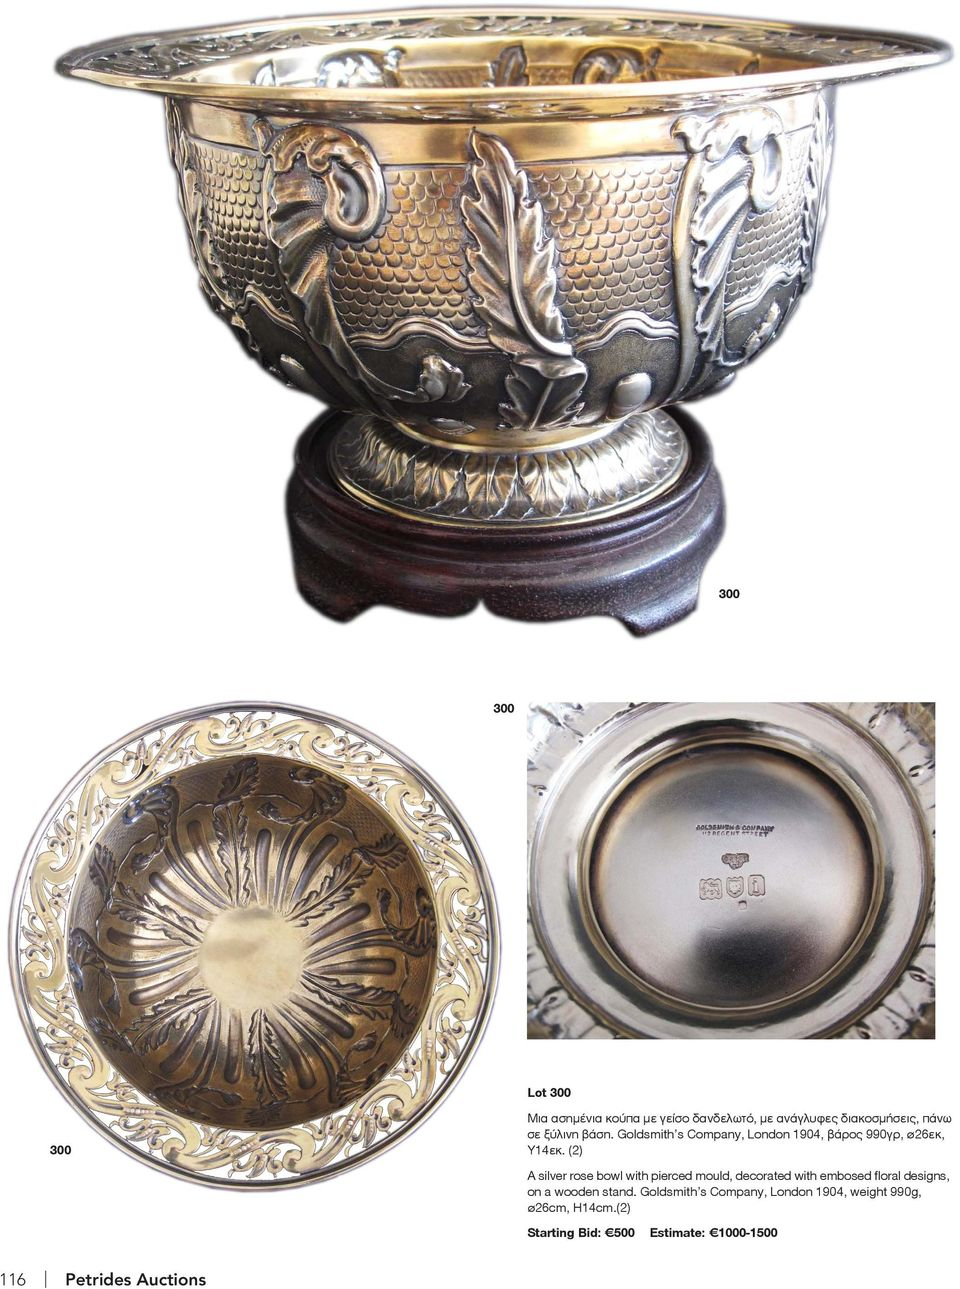 (2) A silver rose bowl with pierced mould, decorated with embosed floral designs, on a wooden